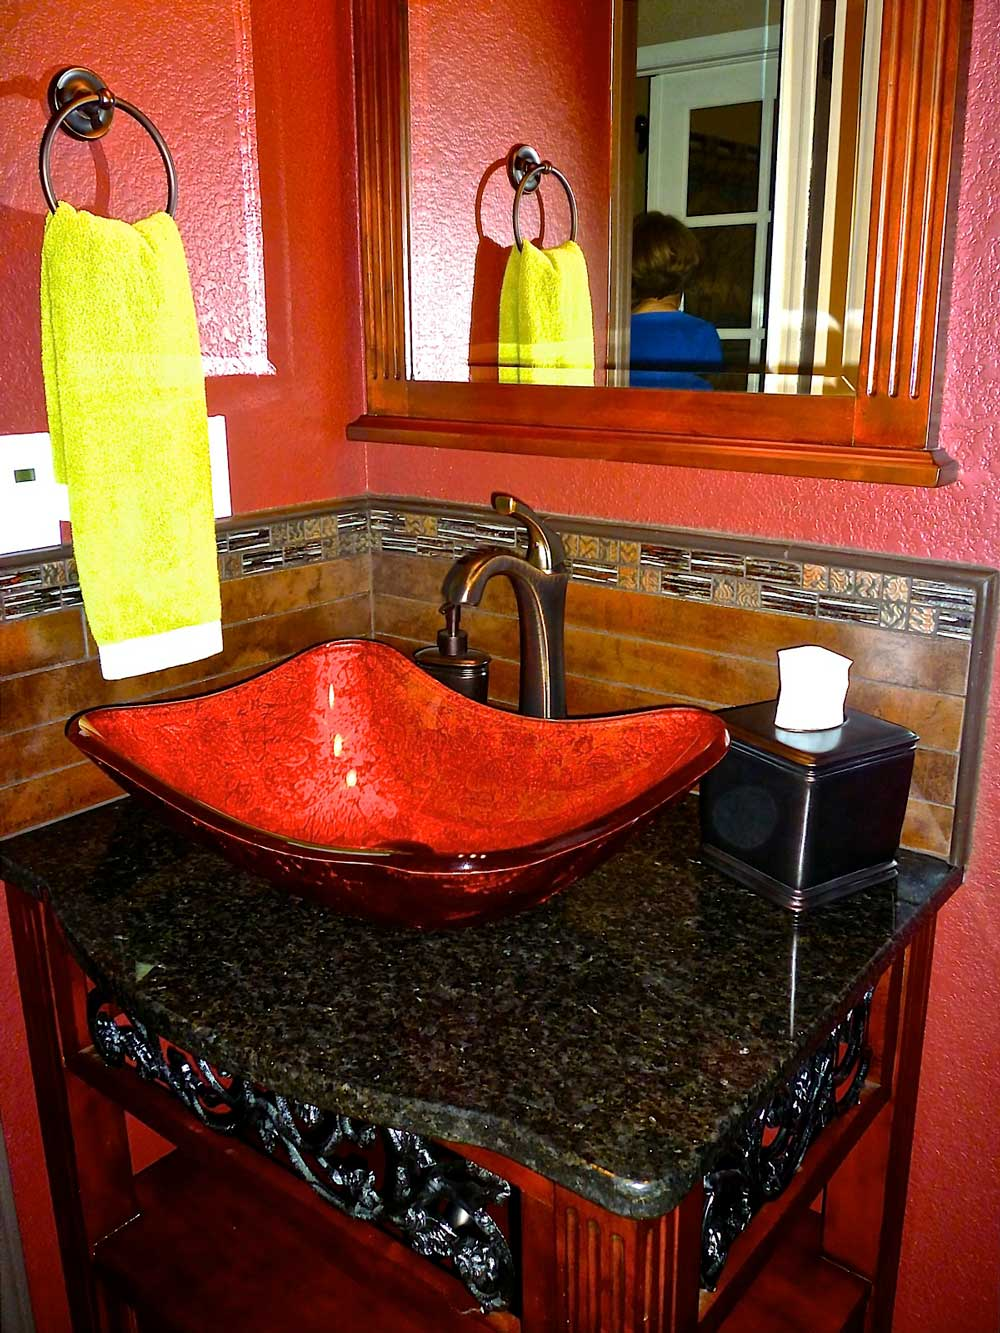 Ceramic Pedestal removed, new pedestal sink added, tile splash, new faucet